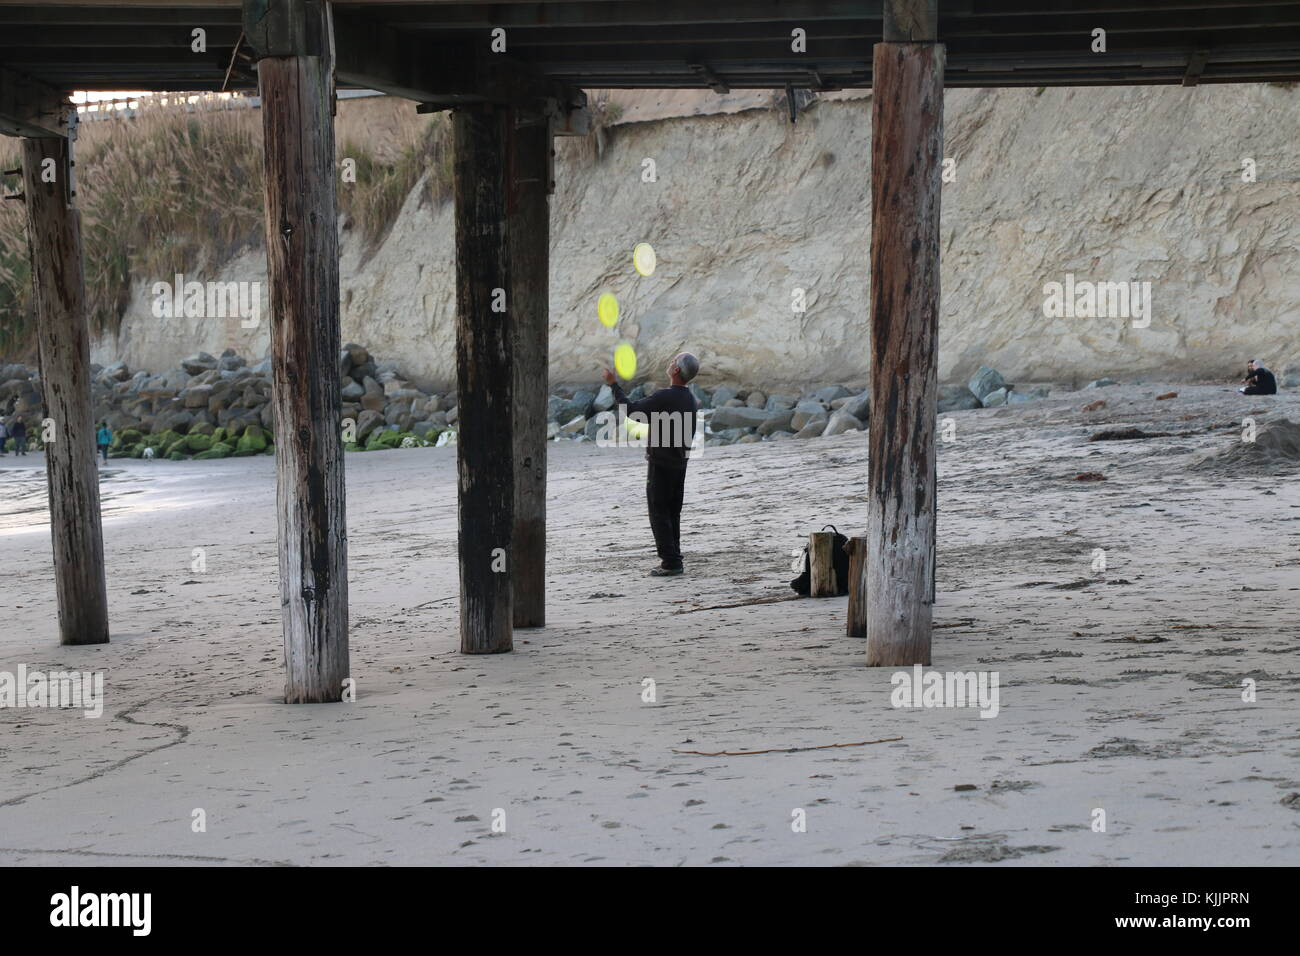 Man juggles yellow frisbees on the beach, Capitola, CA. - Stock Image